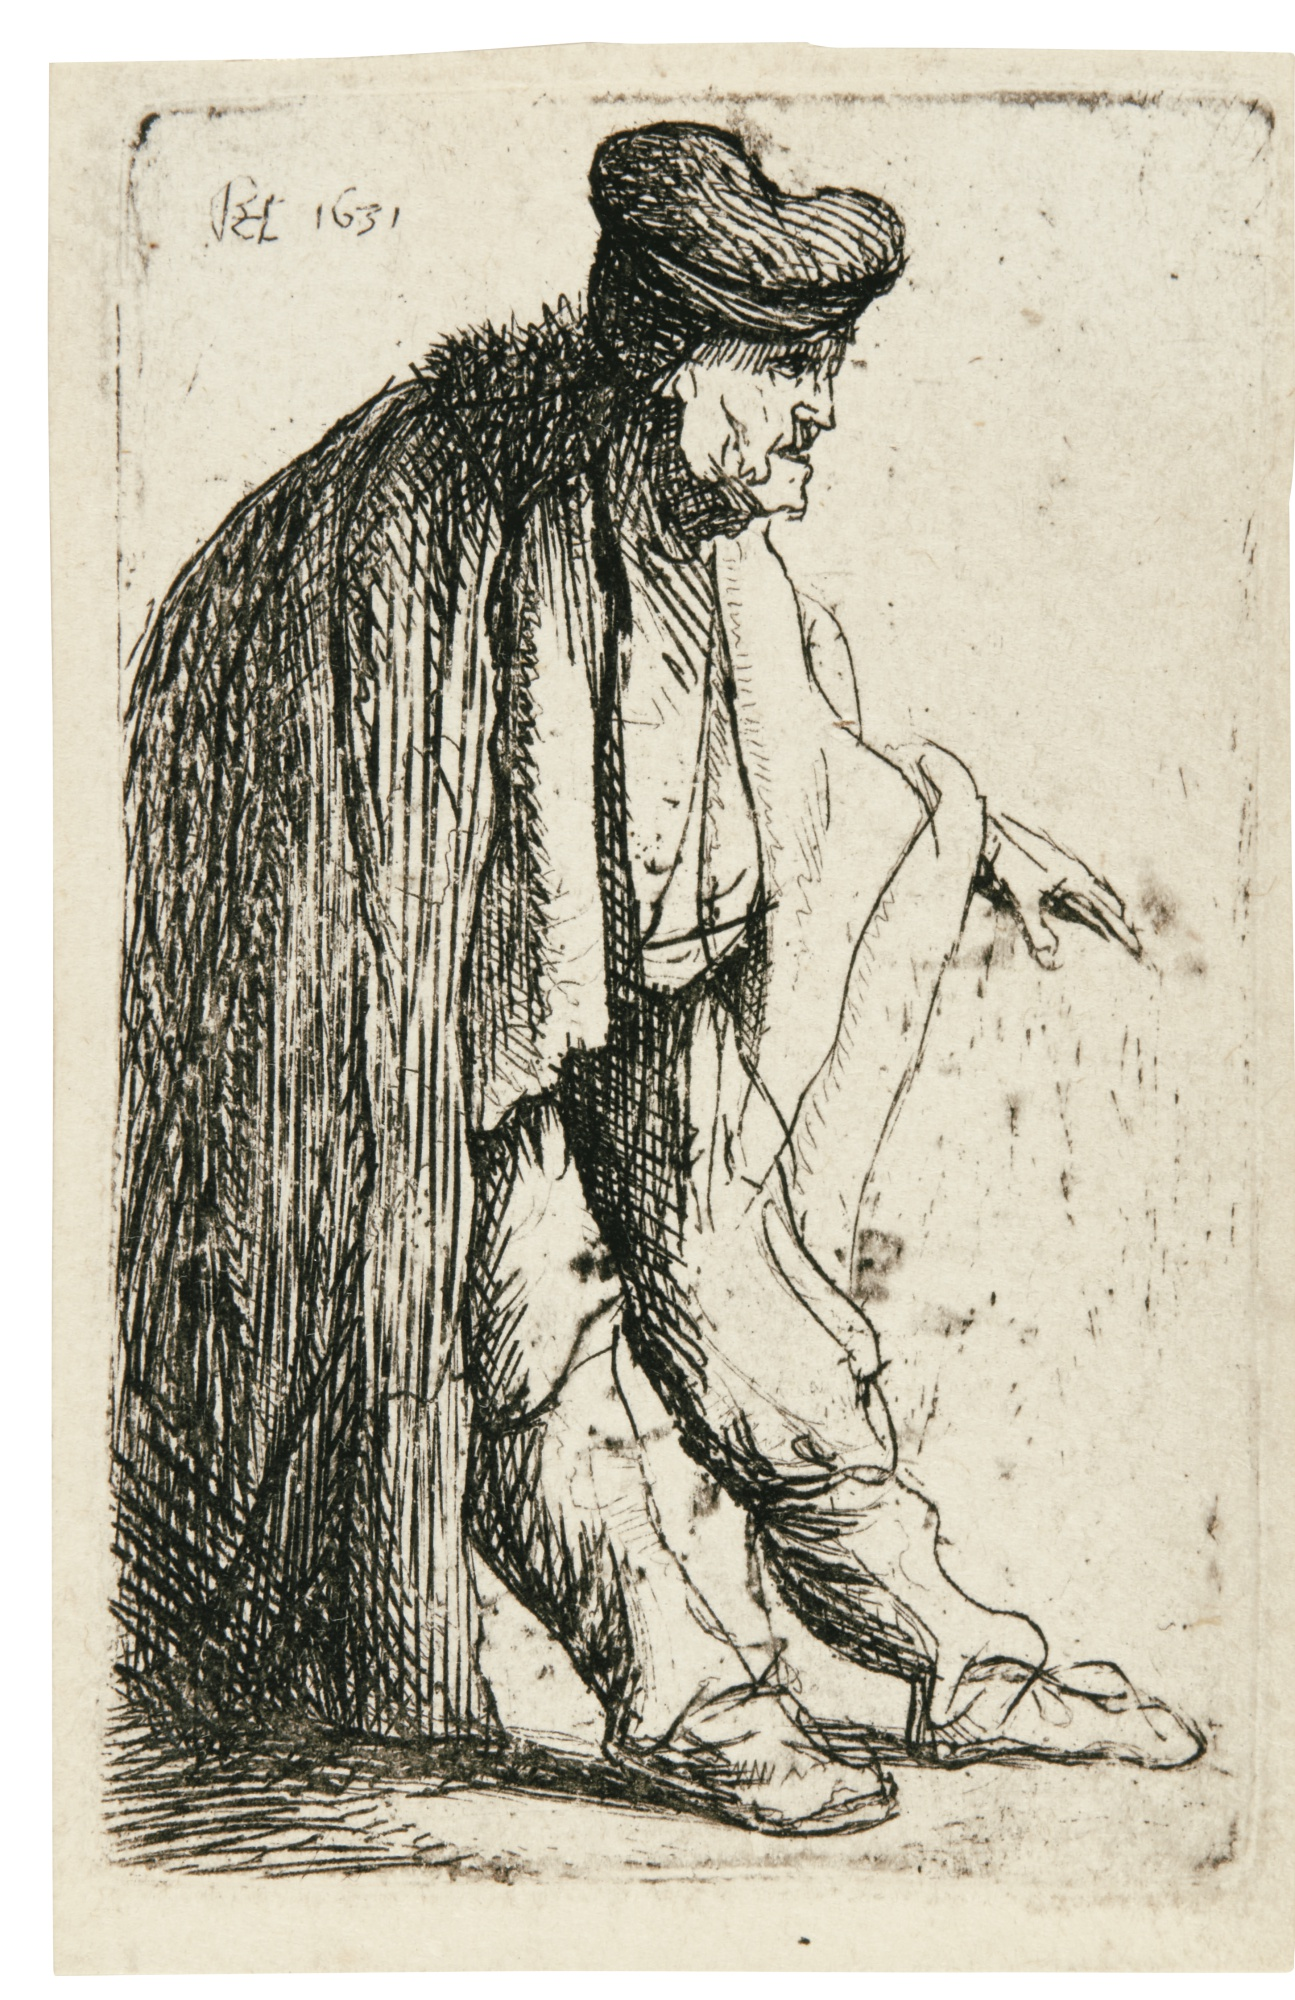 Rembrandt van Rijn-Beggar With His Left Arm Extended (B., Holl. 150; New Holl. 30; H. 73)-1629